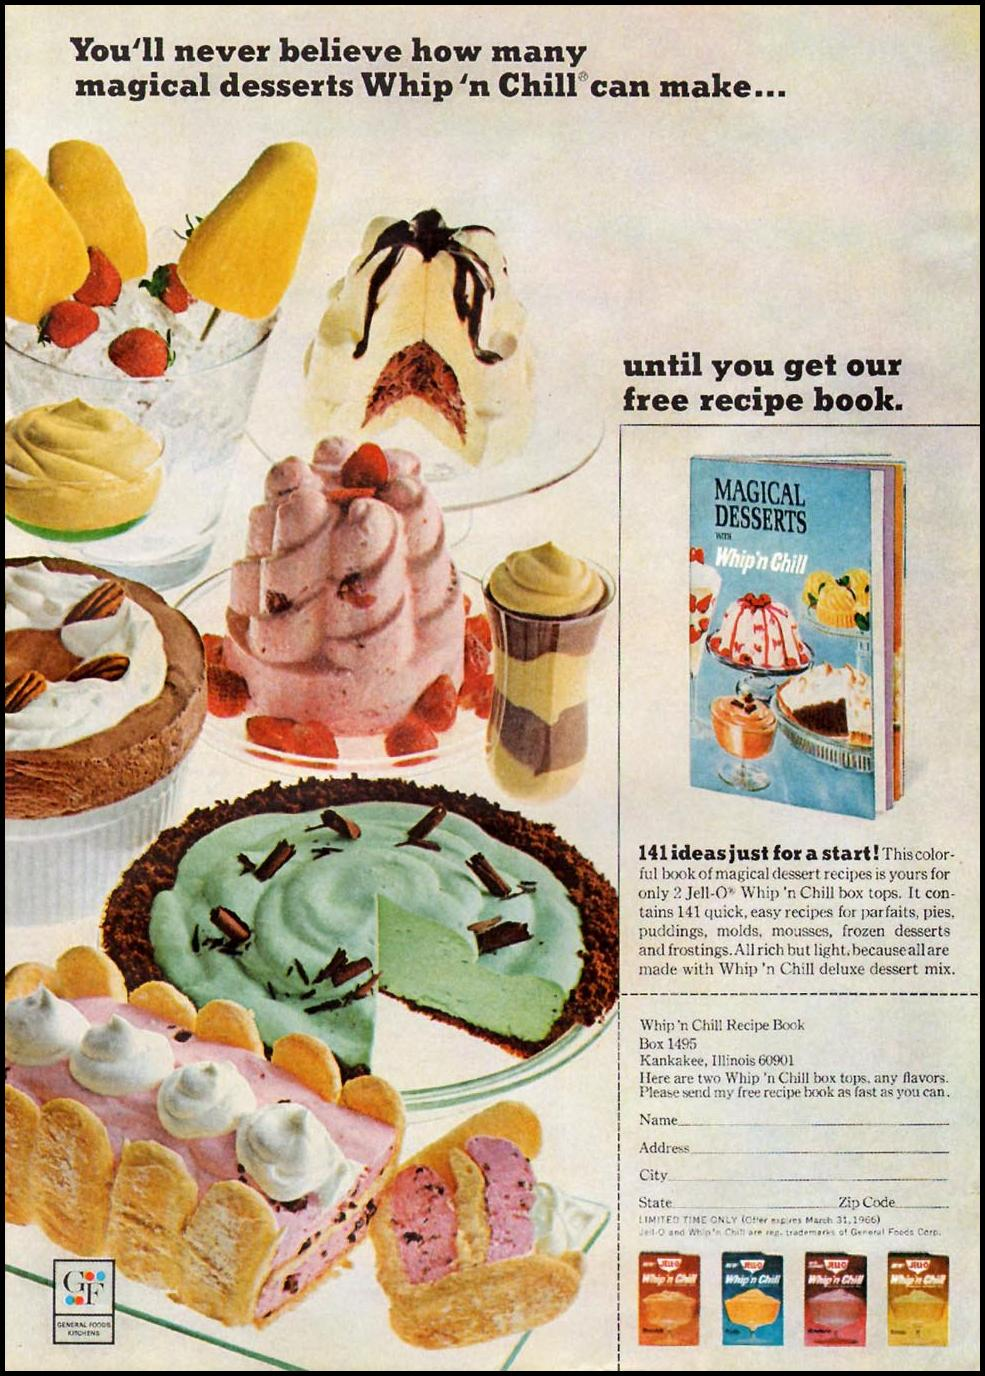 JELL-O WHIP 'N CHILL GOOD HOUSEKEEPING 10/01/1965 p. 7